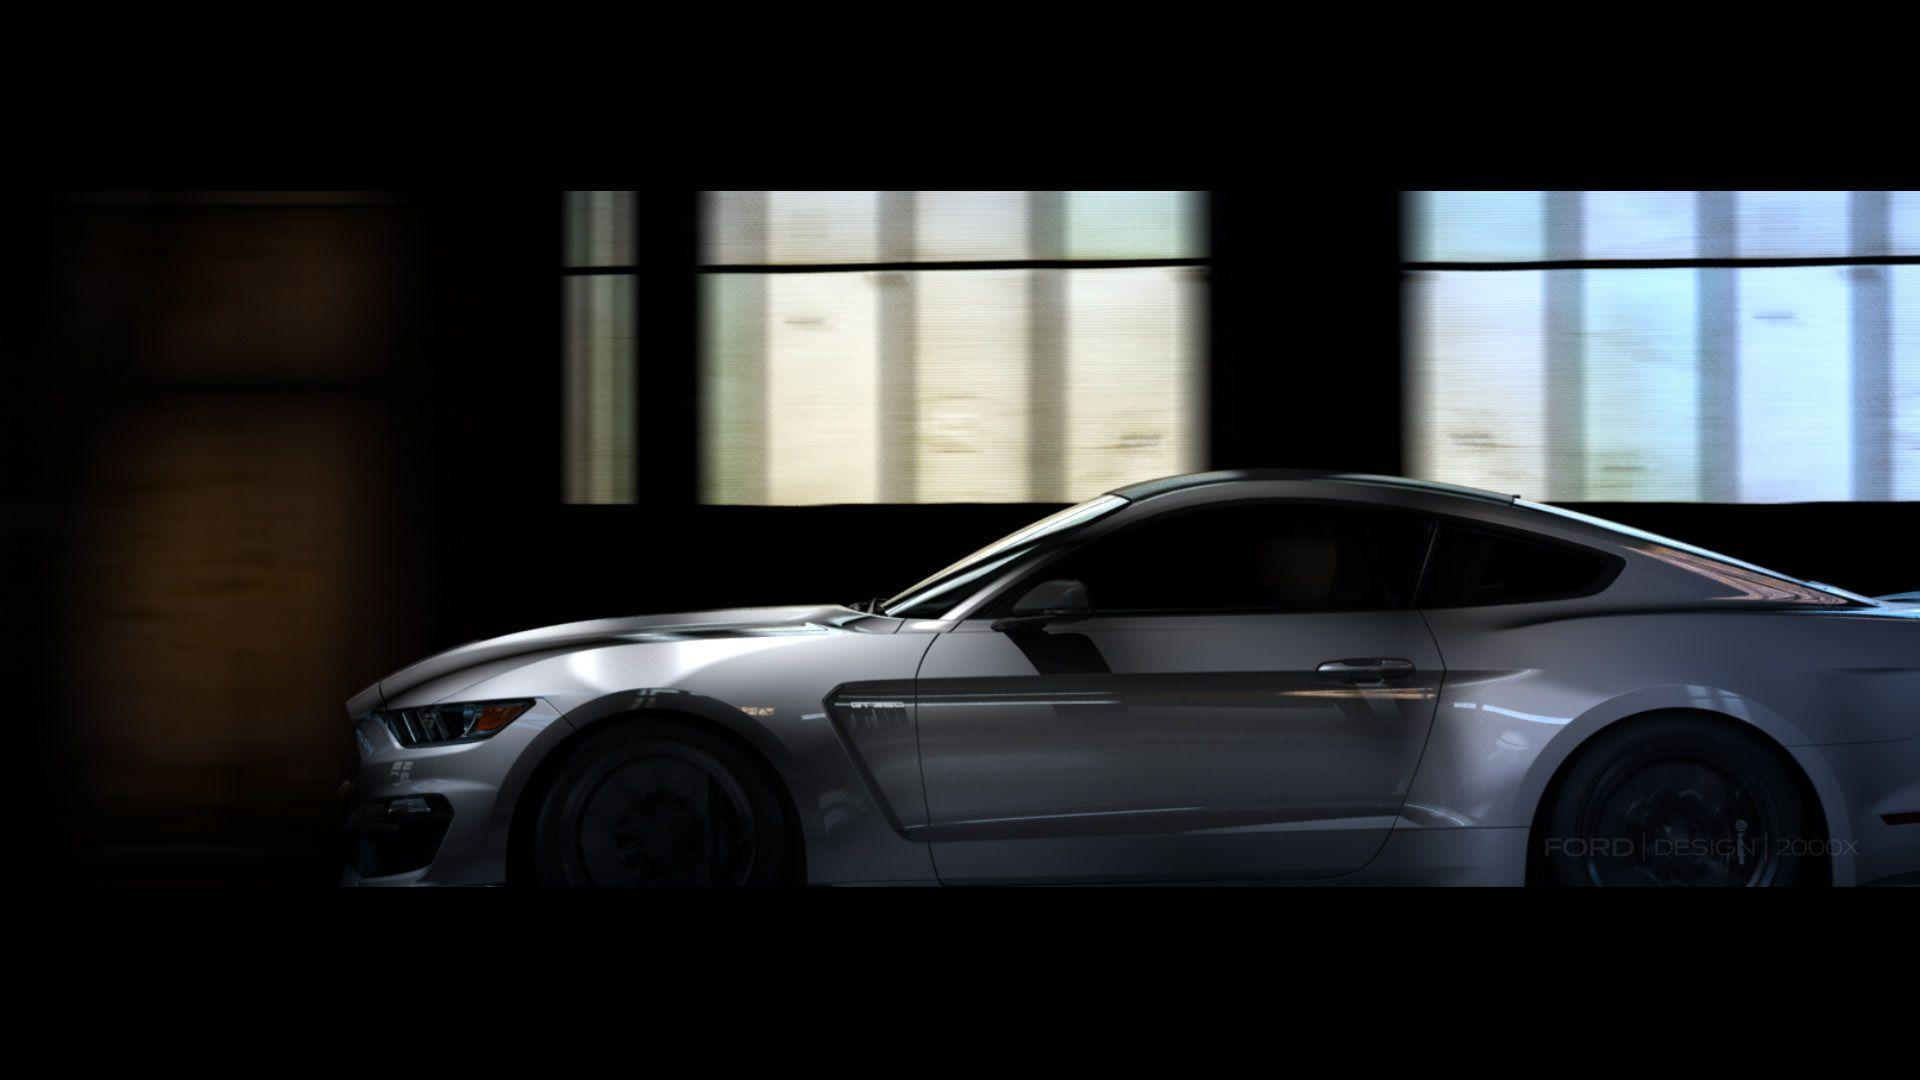 Mustang Shelby GT350 HD Wallpapers